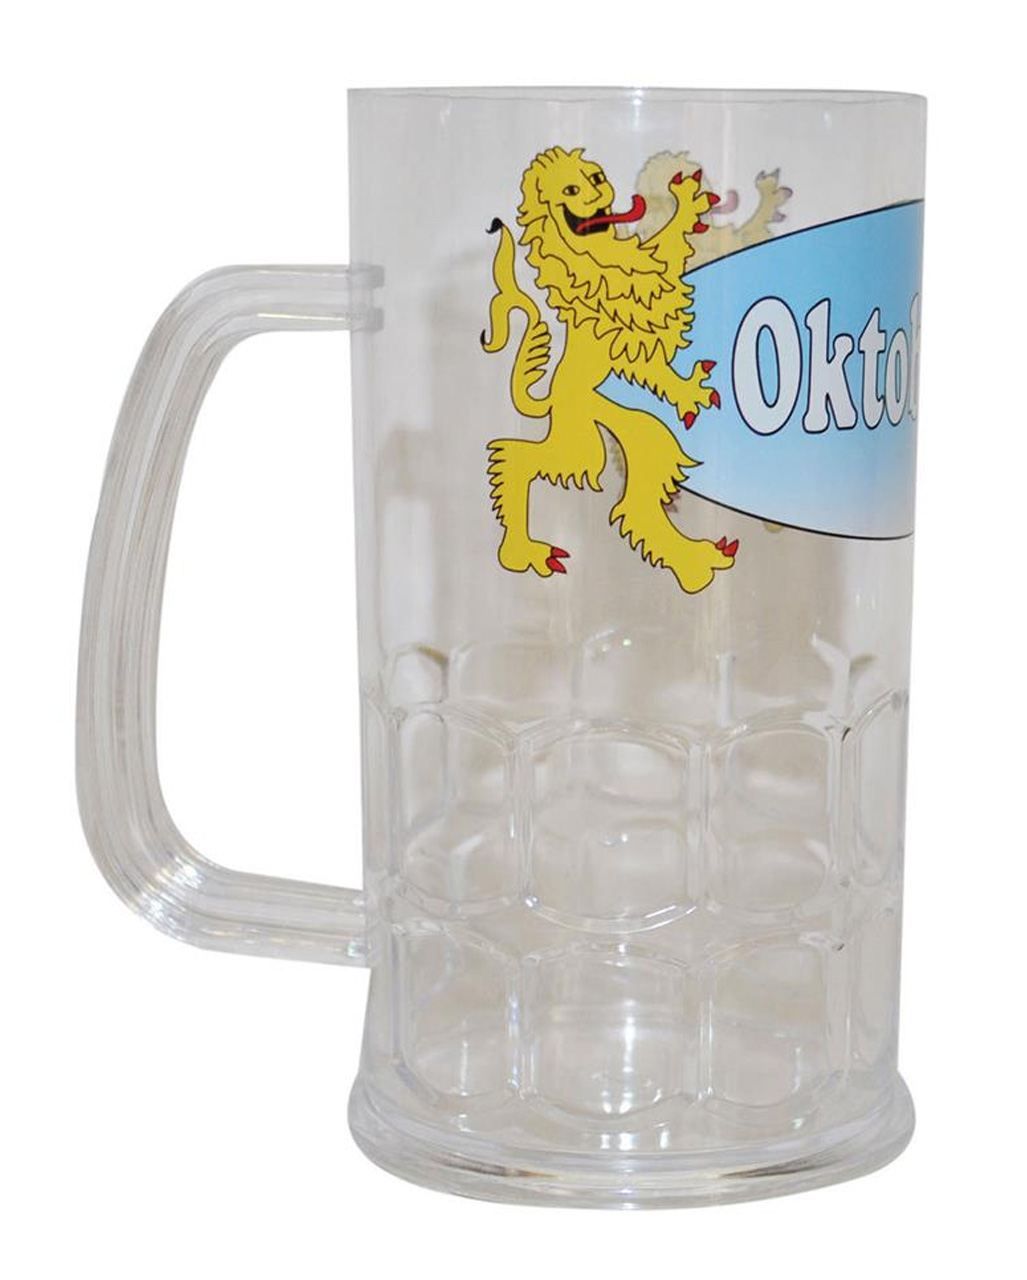 Oktoberfest Beer Mug Party Dishes Party Accessories Buy Online Cheap Horror Shop Com